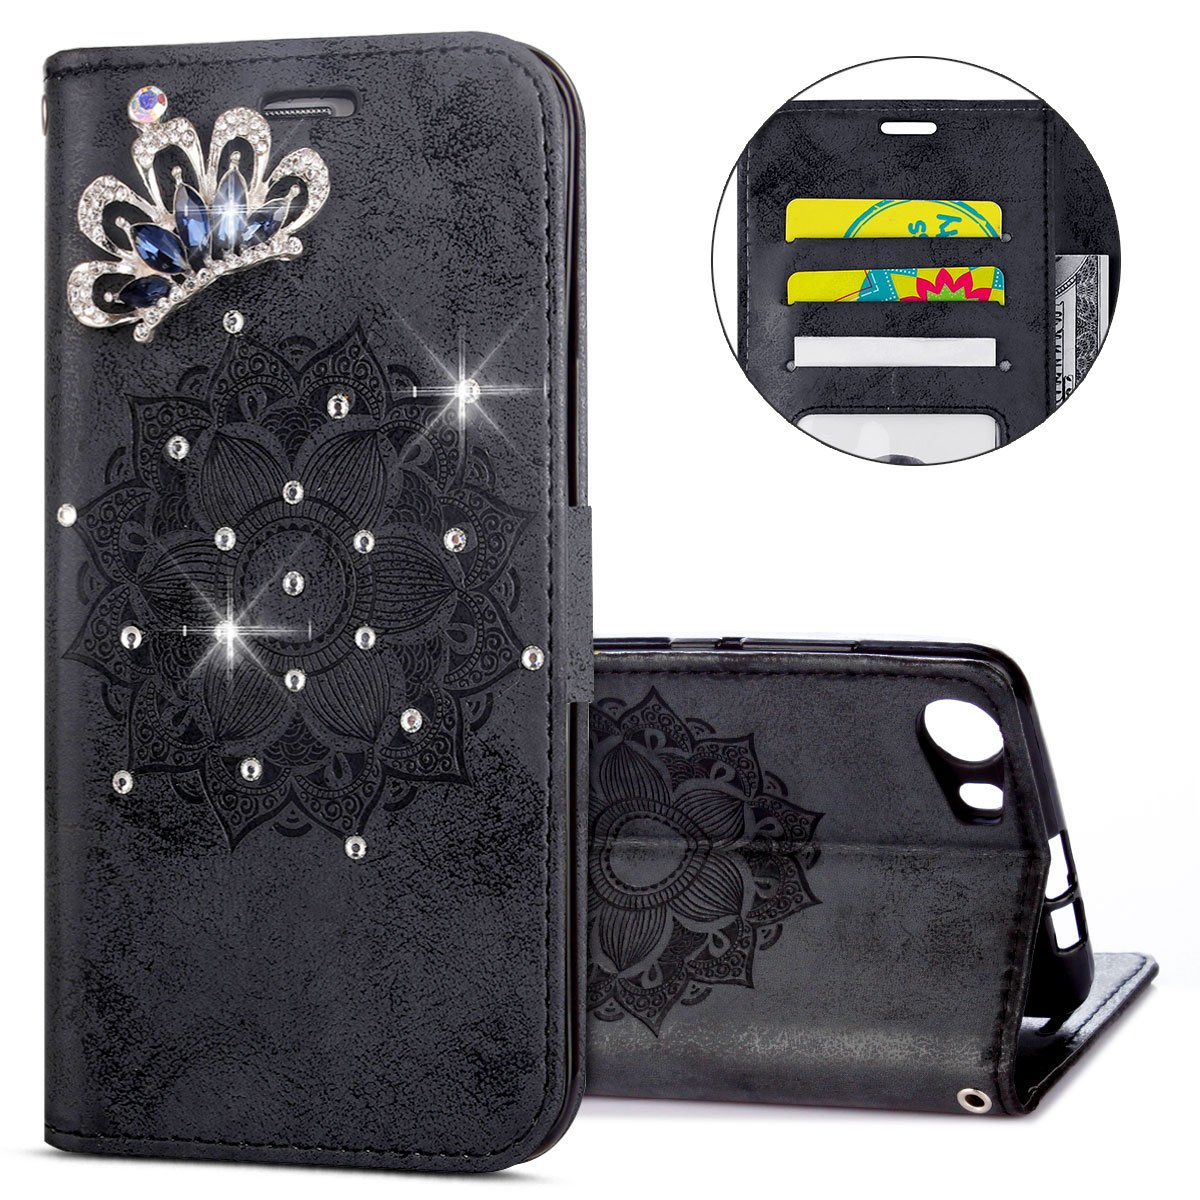 IKASEFU Wiko Lenny 2 Case,3D Clear Crown Rhinestone Diamond Bling Glitter Wallet with Card Holder Emboss Mandala Floral Pu Leather Magnetic Flip Case Protective Cover for Wiko Lenny 2,Black